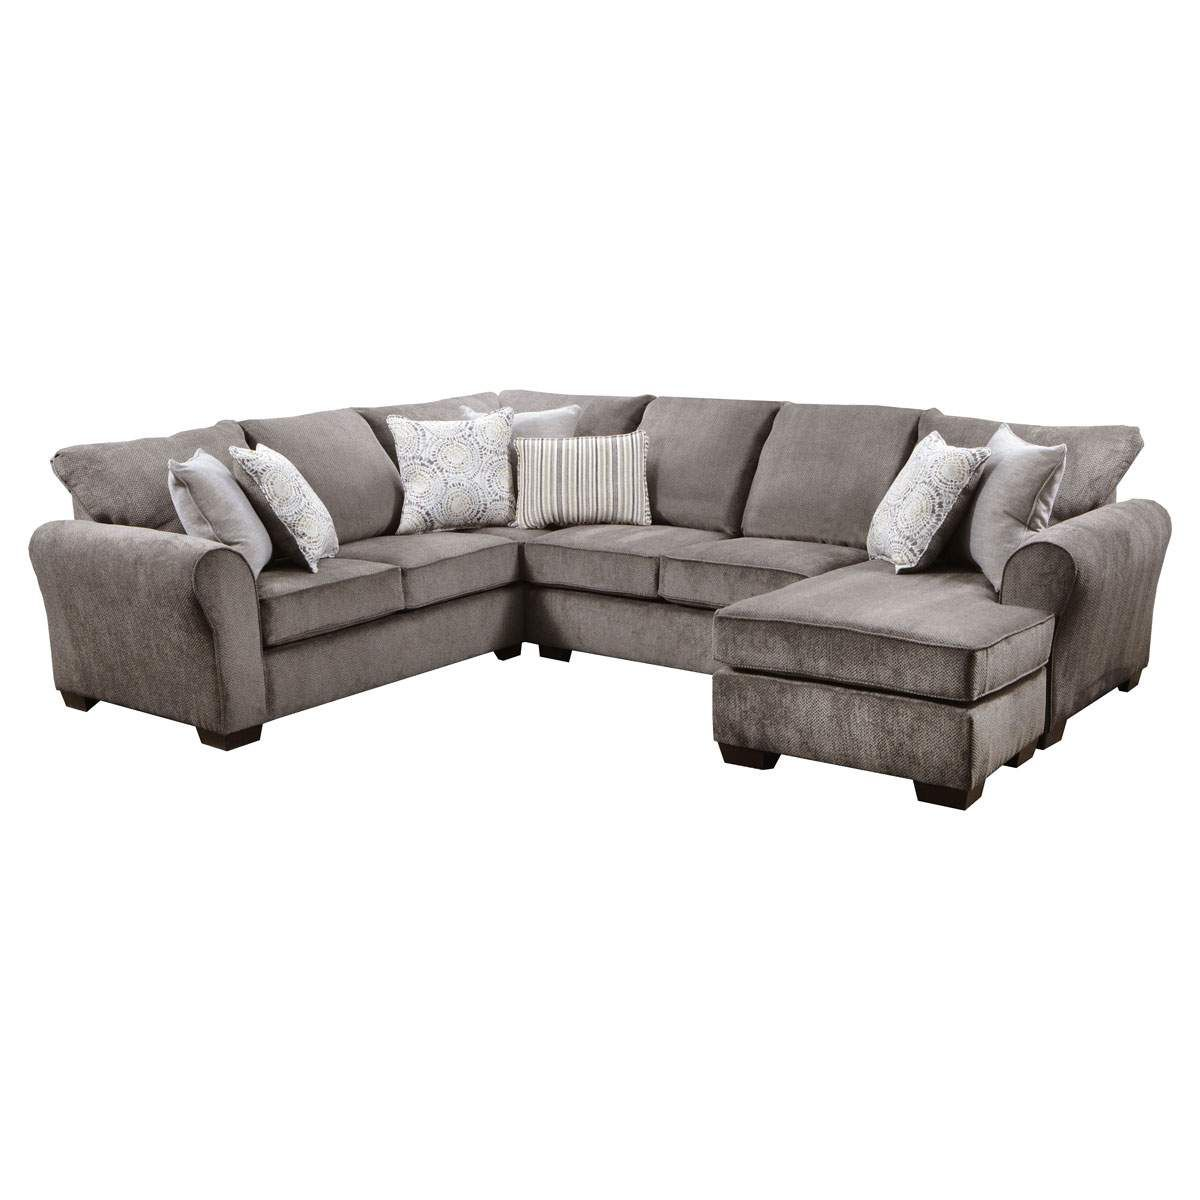 Taylor 2 Piece Sectional With Chaise In Ash Jerome S Furniture With Images Sectional Sofa